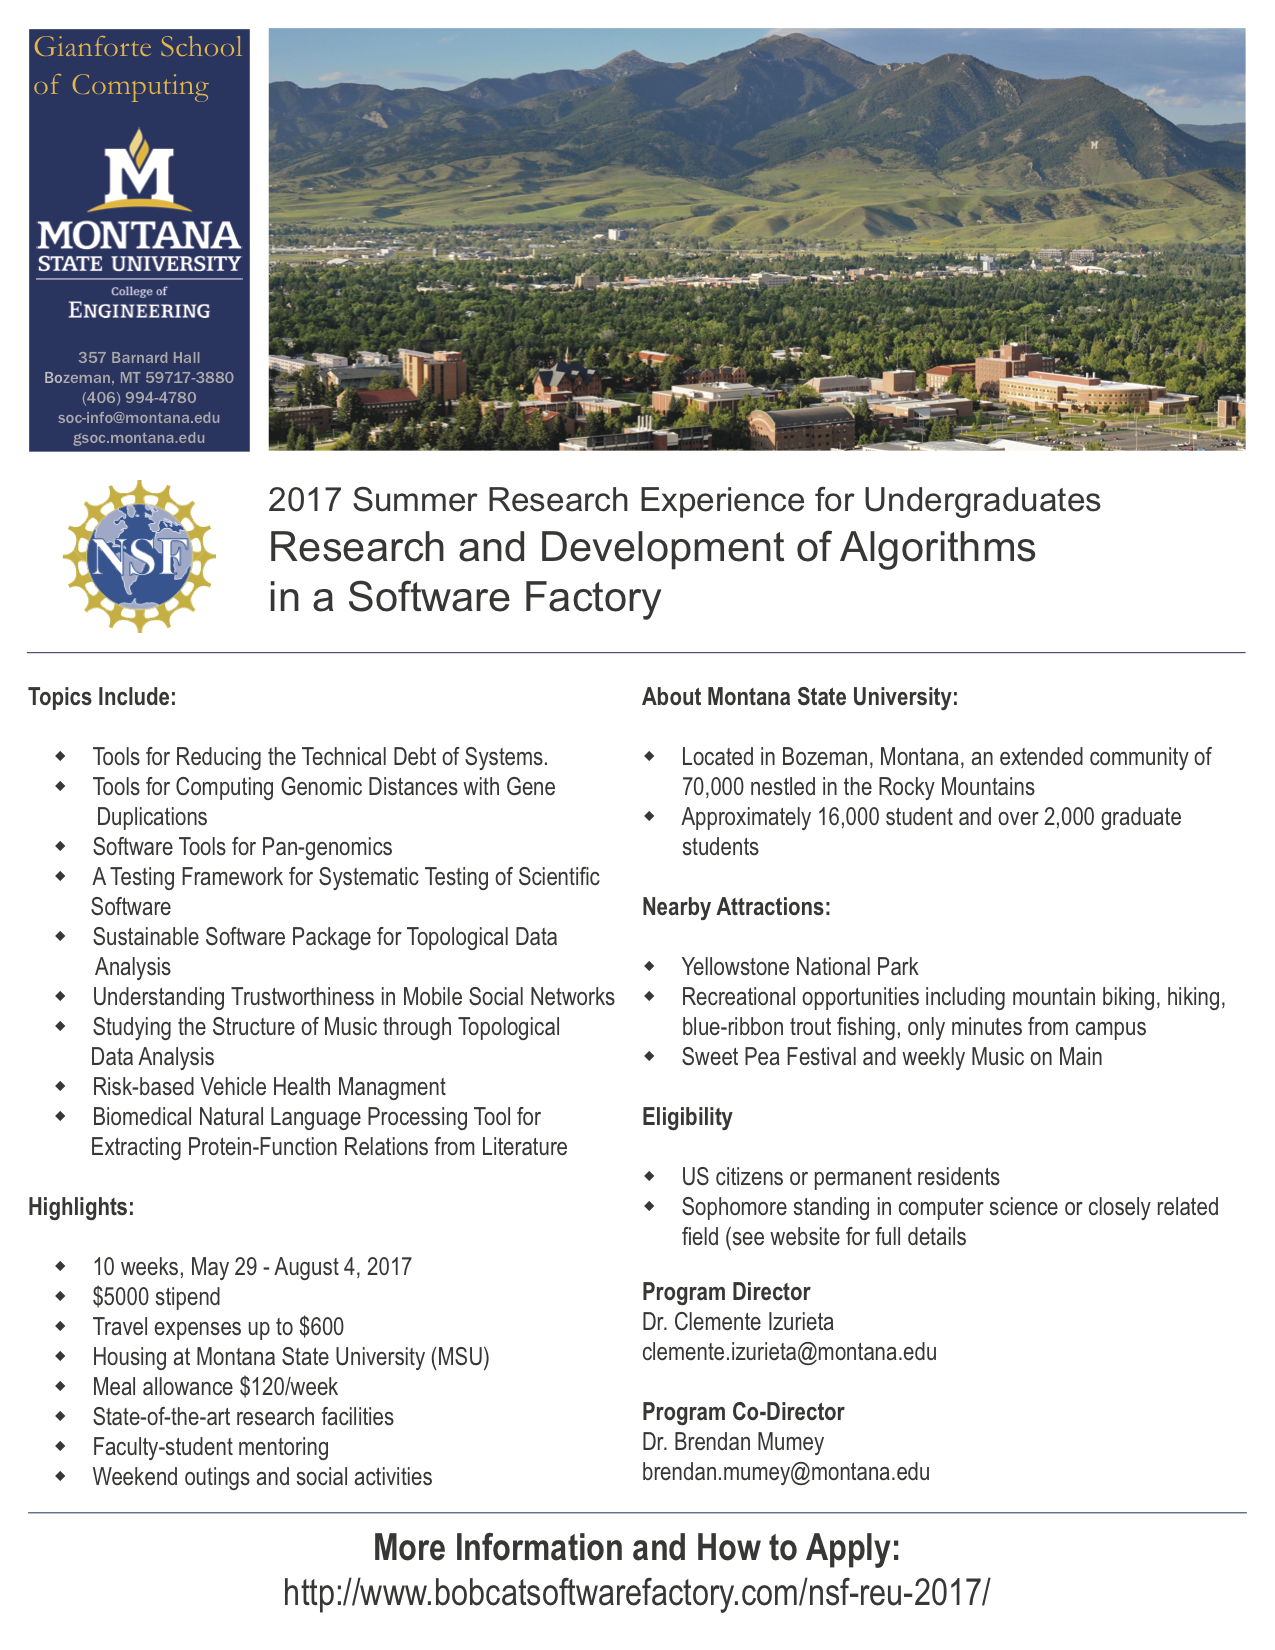 REU: Research and Development of Algorithms in a Software